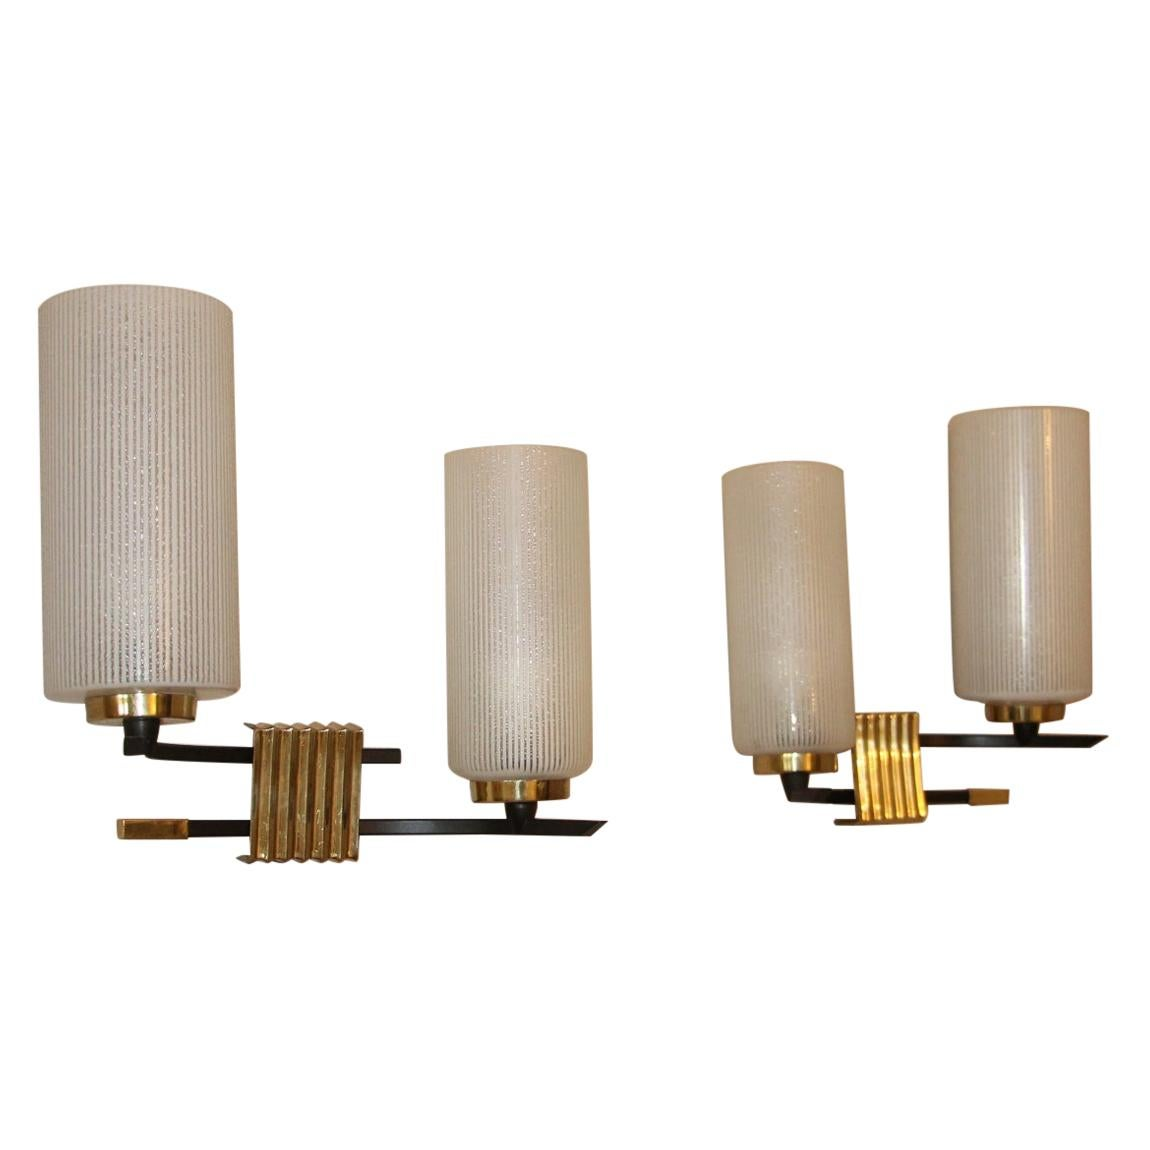 Midcentury French Brass and Opaline Glass Sconces by Maison Arlus, 1950s